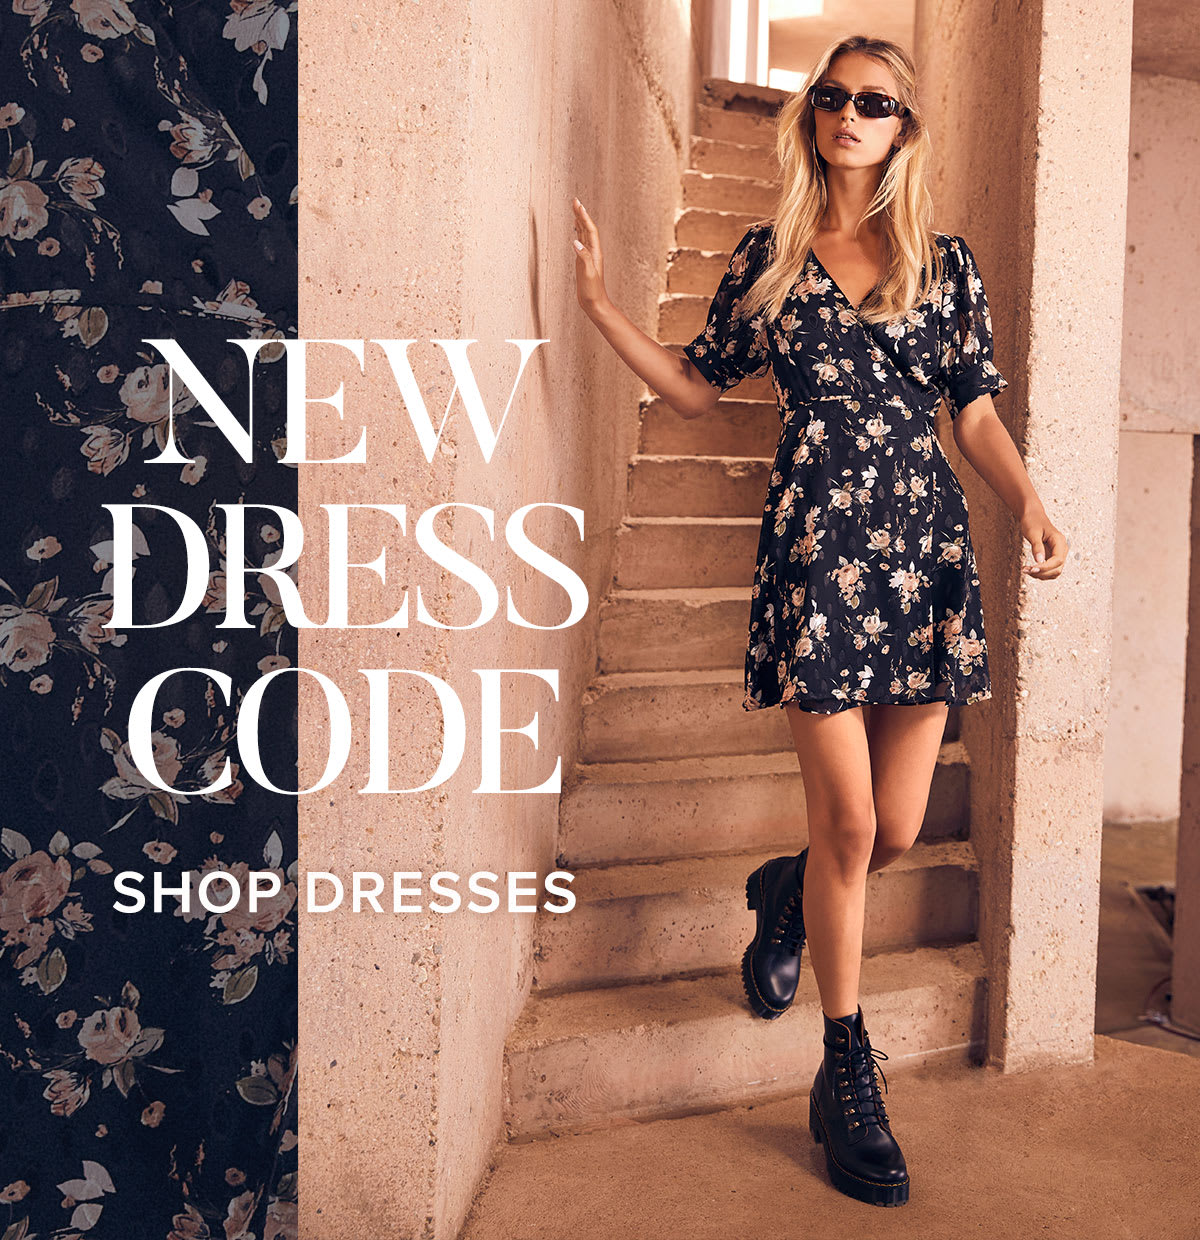 4cecad5dabb1 Cute Dresses, Tops, Shoes, Jewelry & Clothing for Women | Lulus